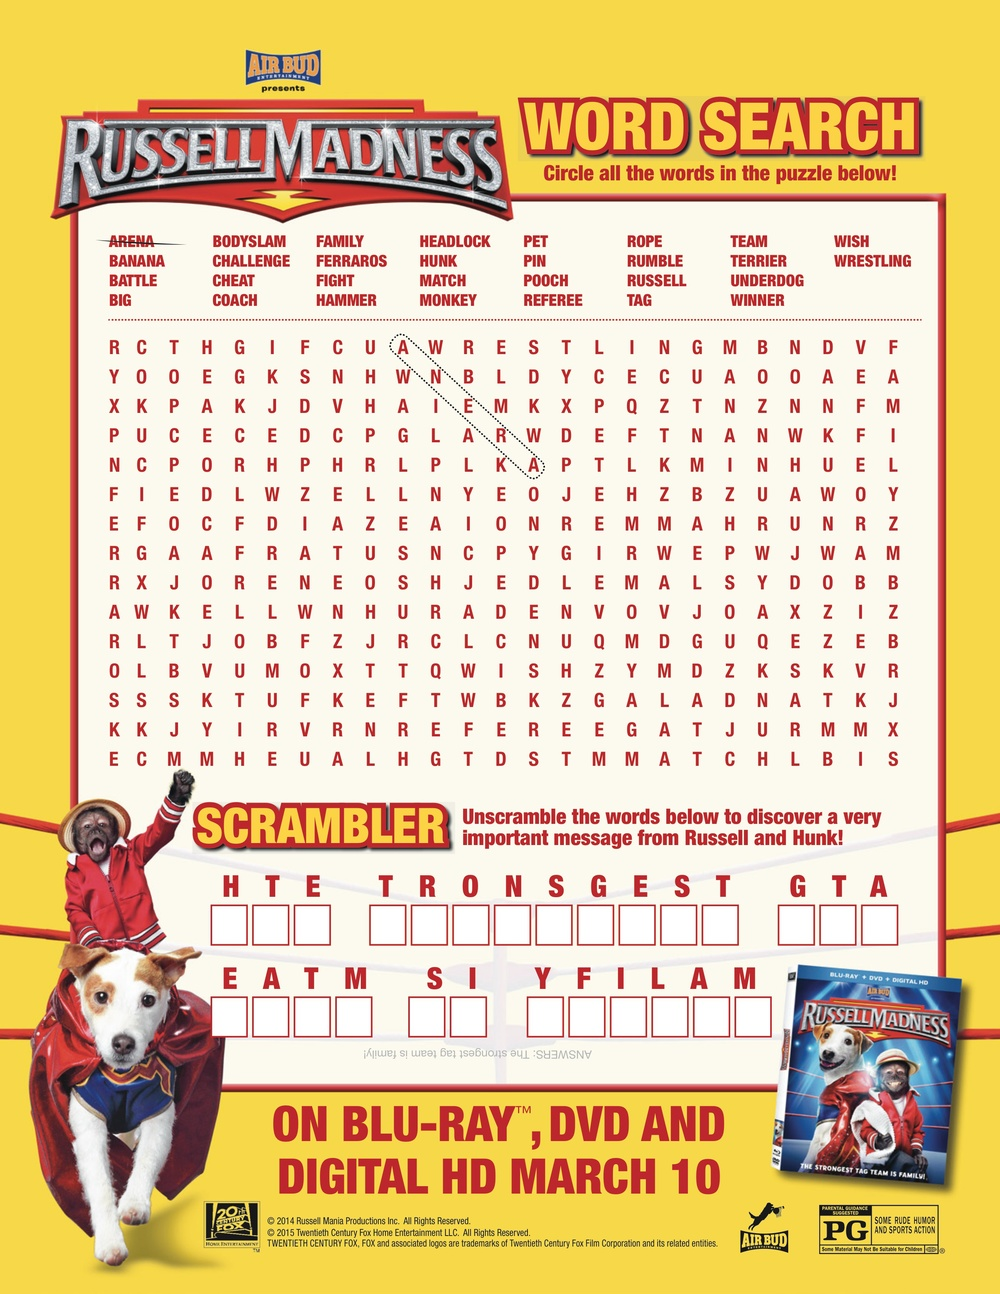 Russell Madness-word search.jpg